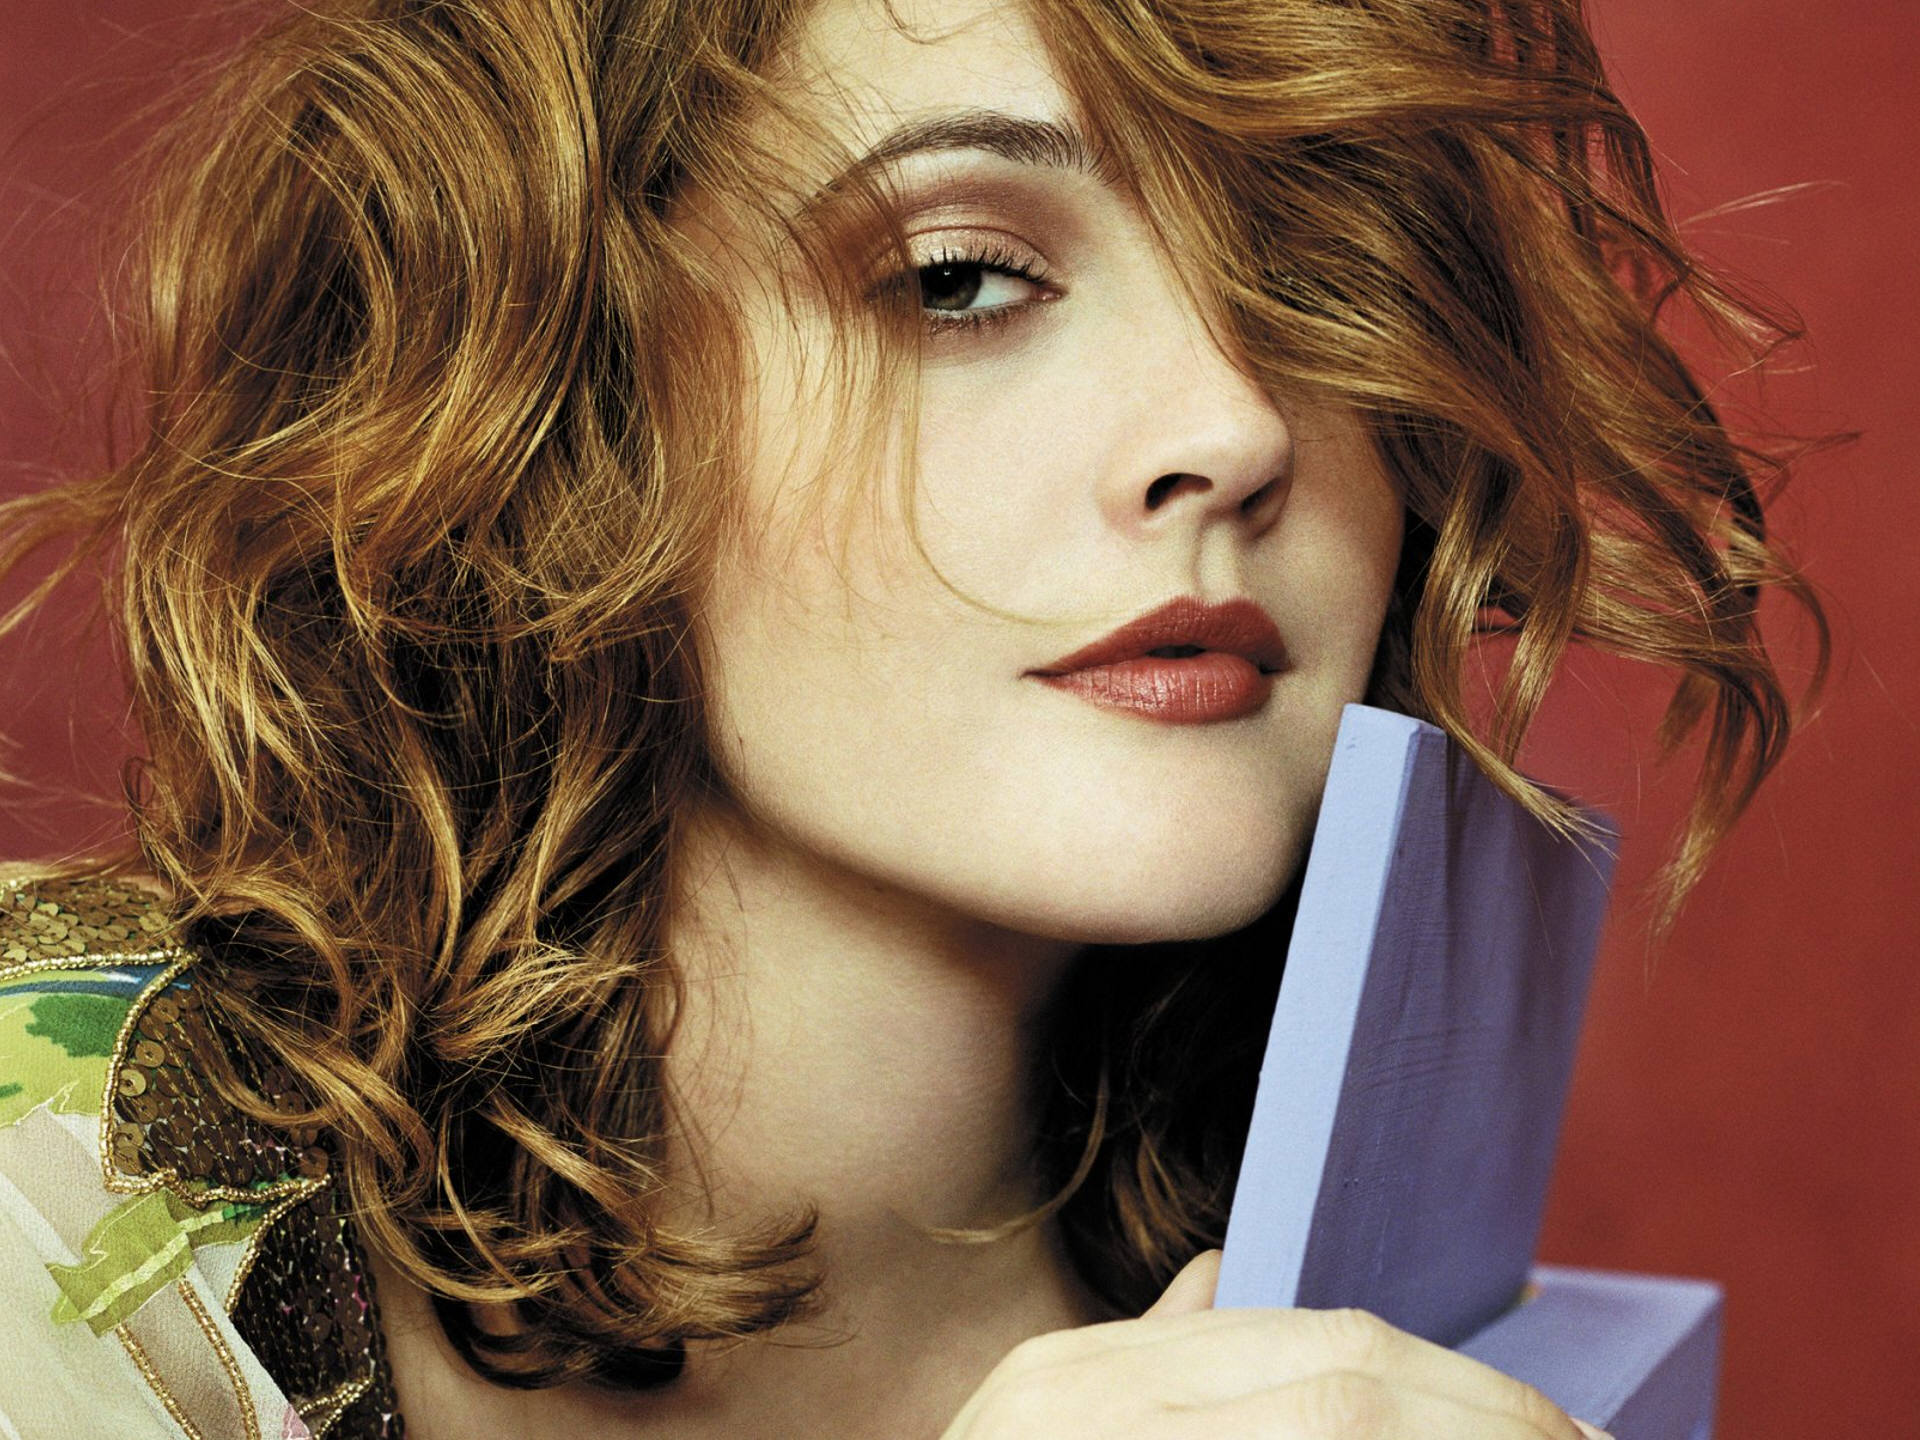 Drew Barrymore Widescreen